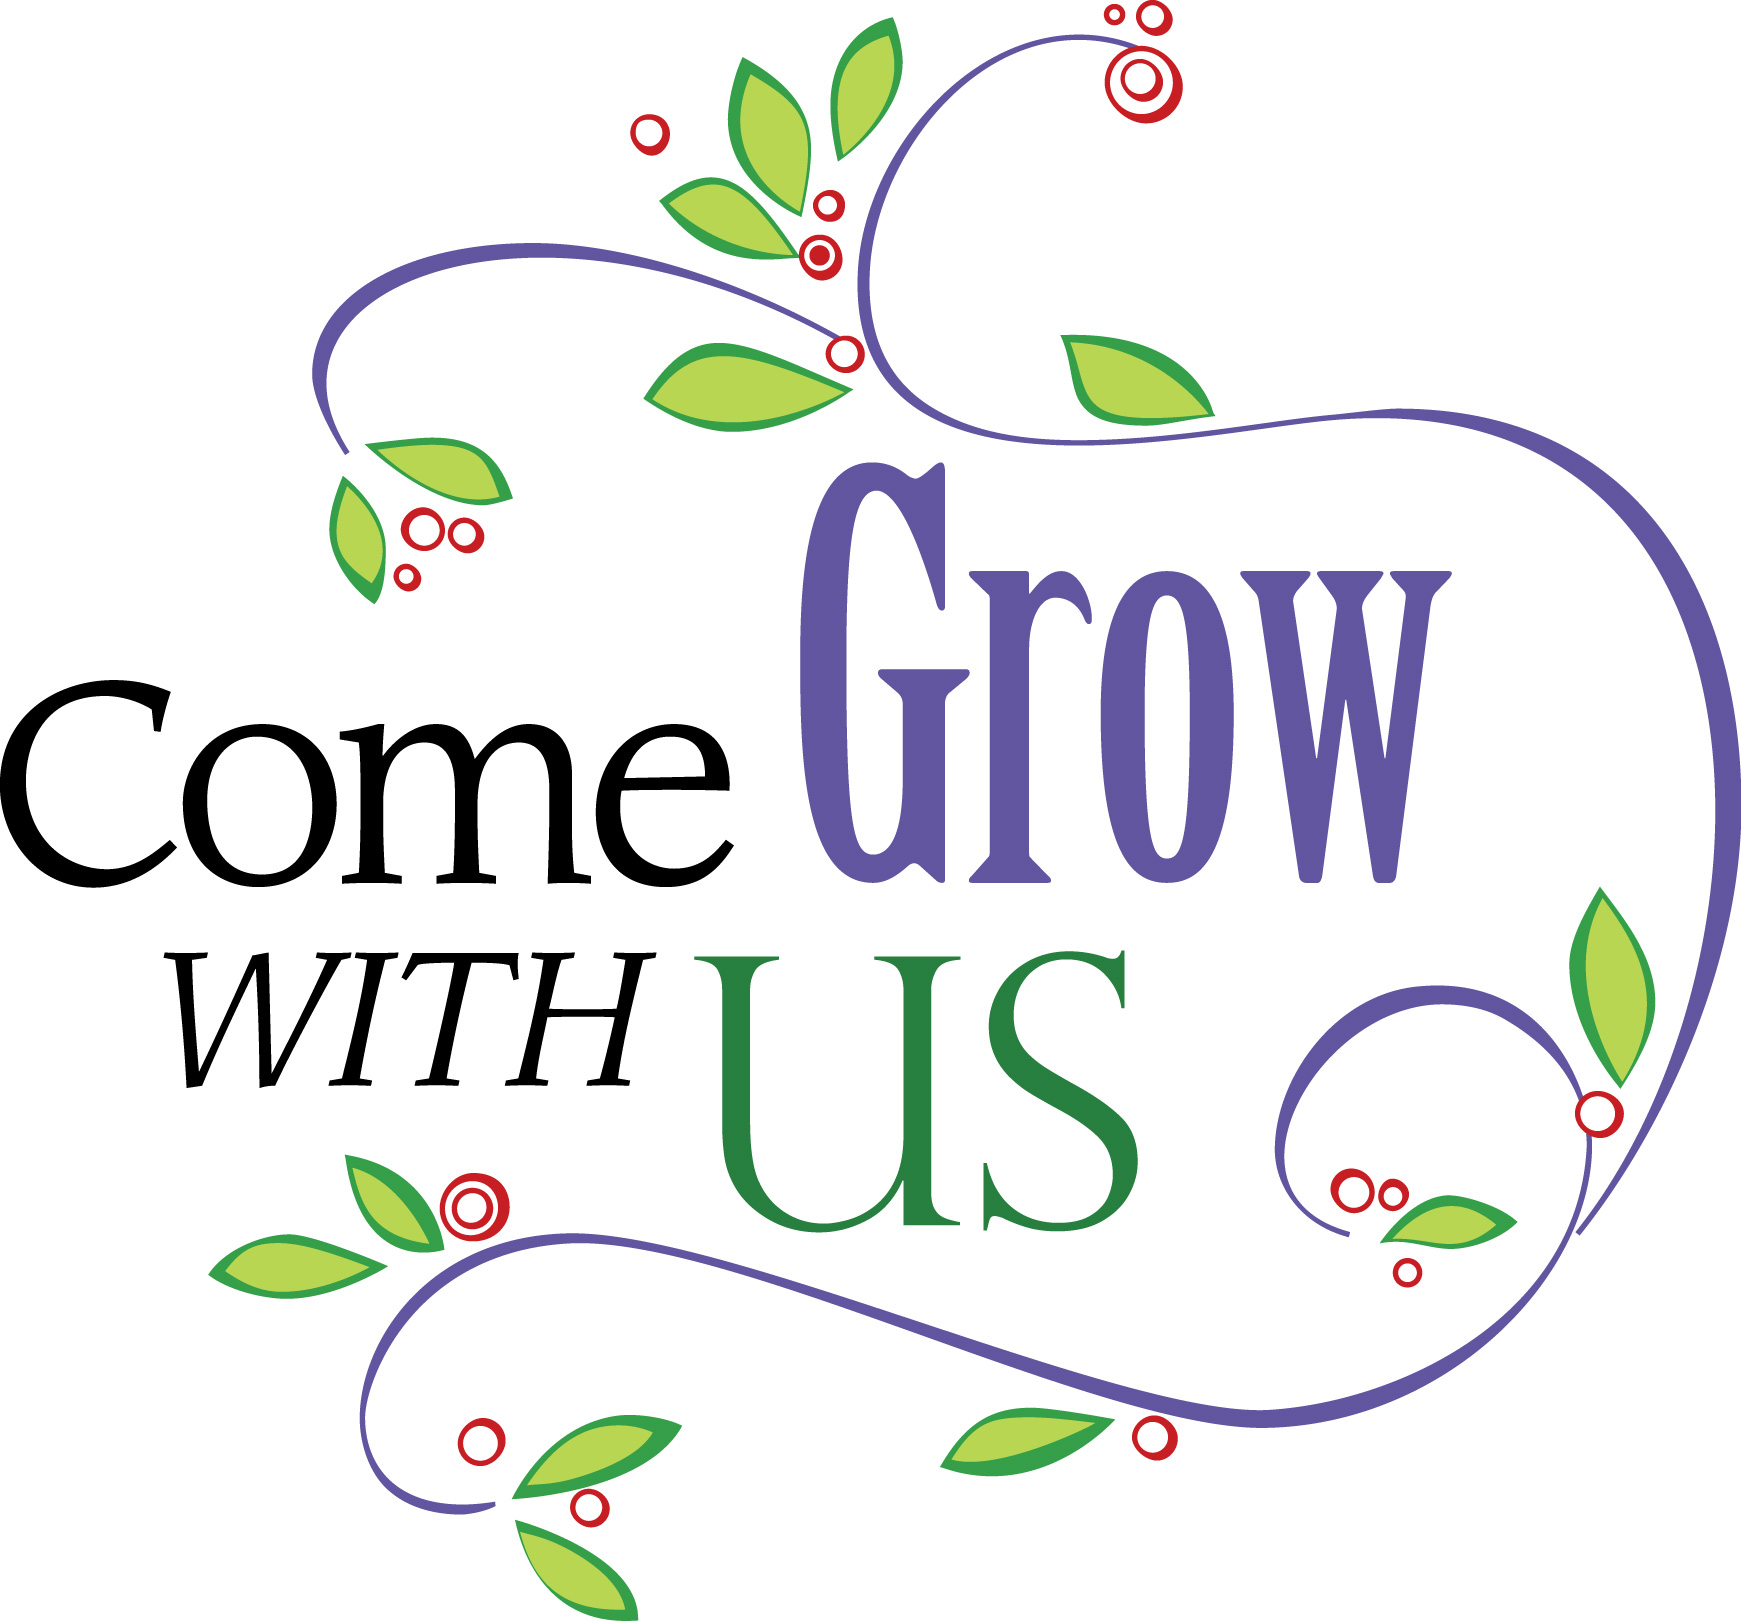 Come worship with us clipart 8 » Clipart Station.